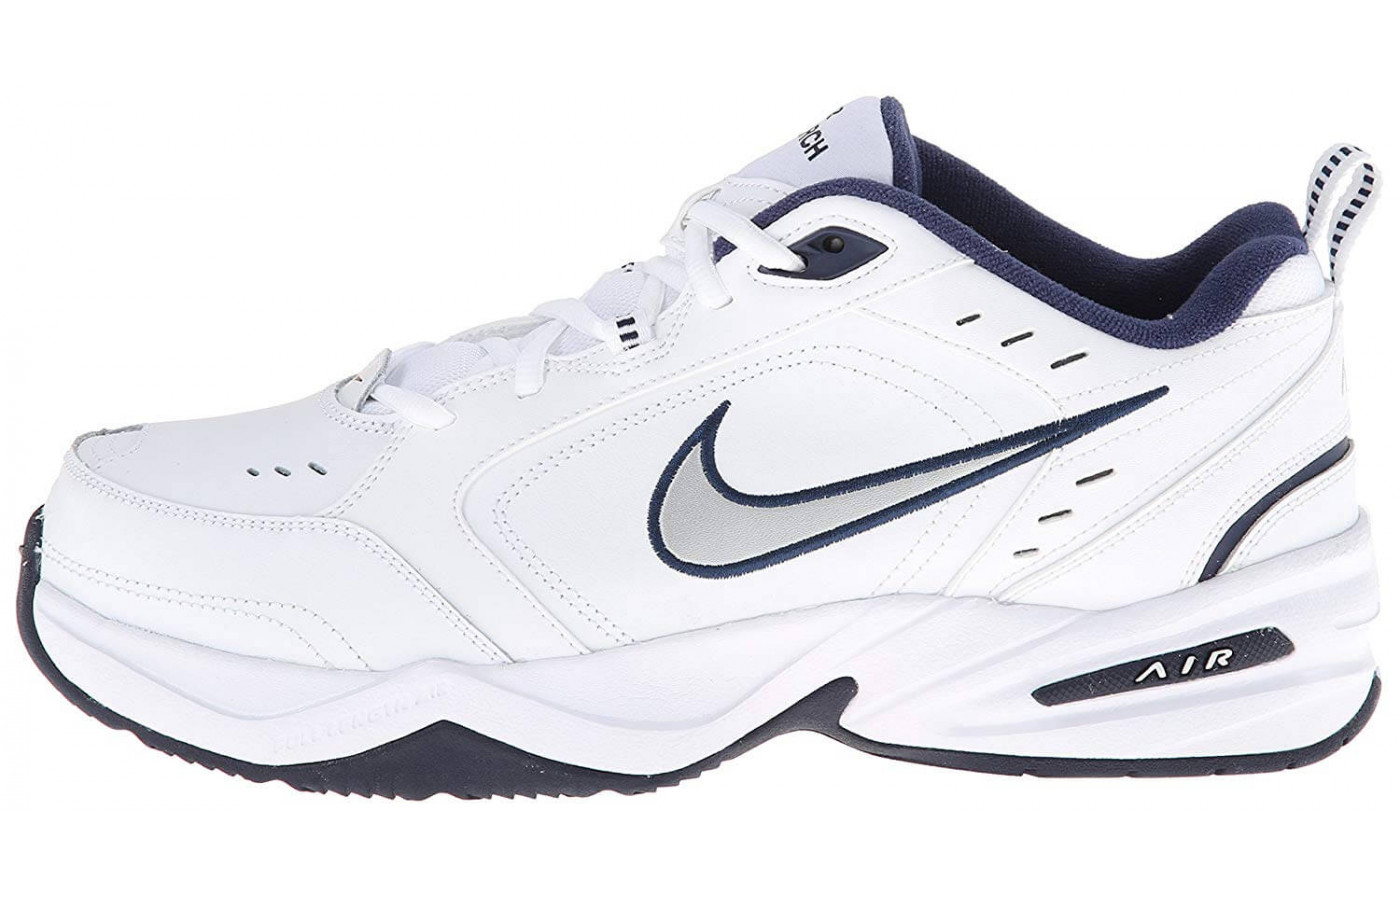 Nike Air Monarch IV Left